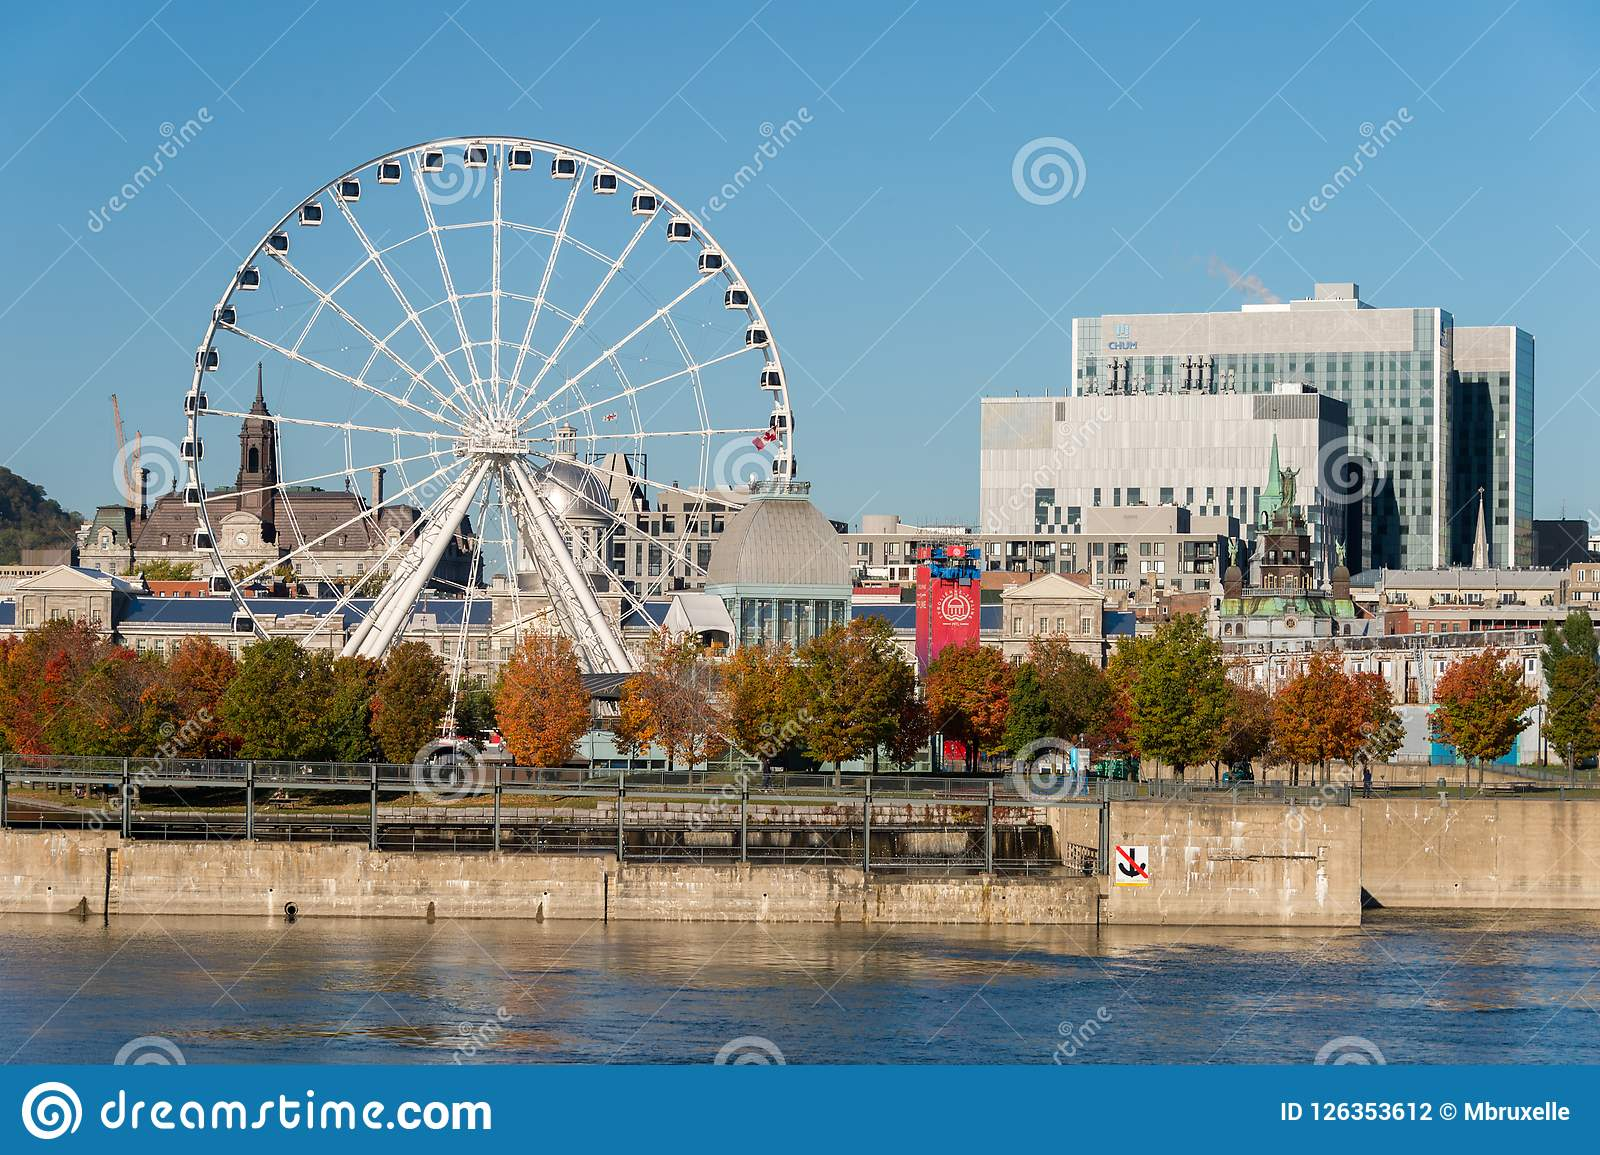 Quebec Montreal Montreal Giant Ferris Wheel In The Old Port Of Montreal Quebec